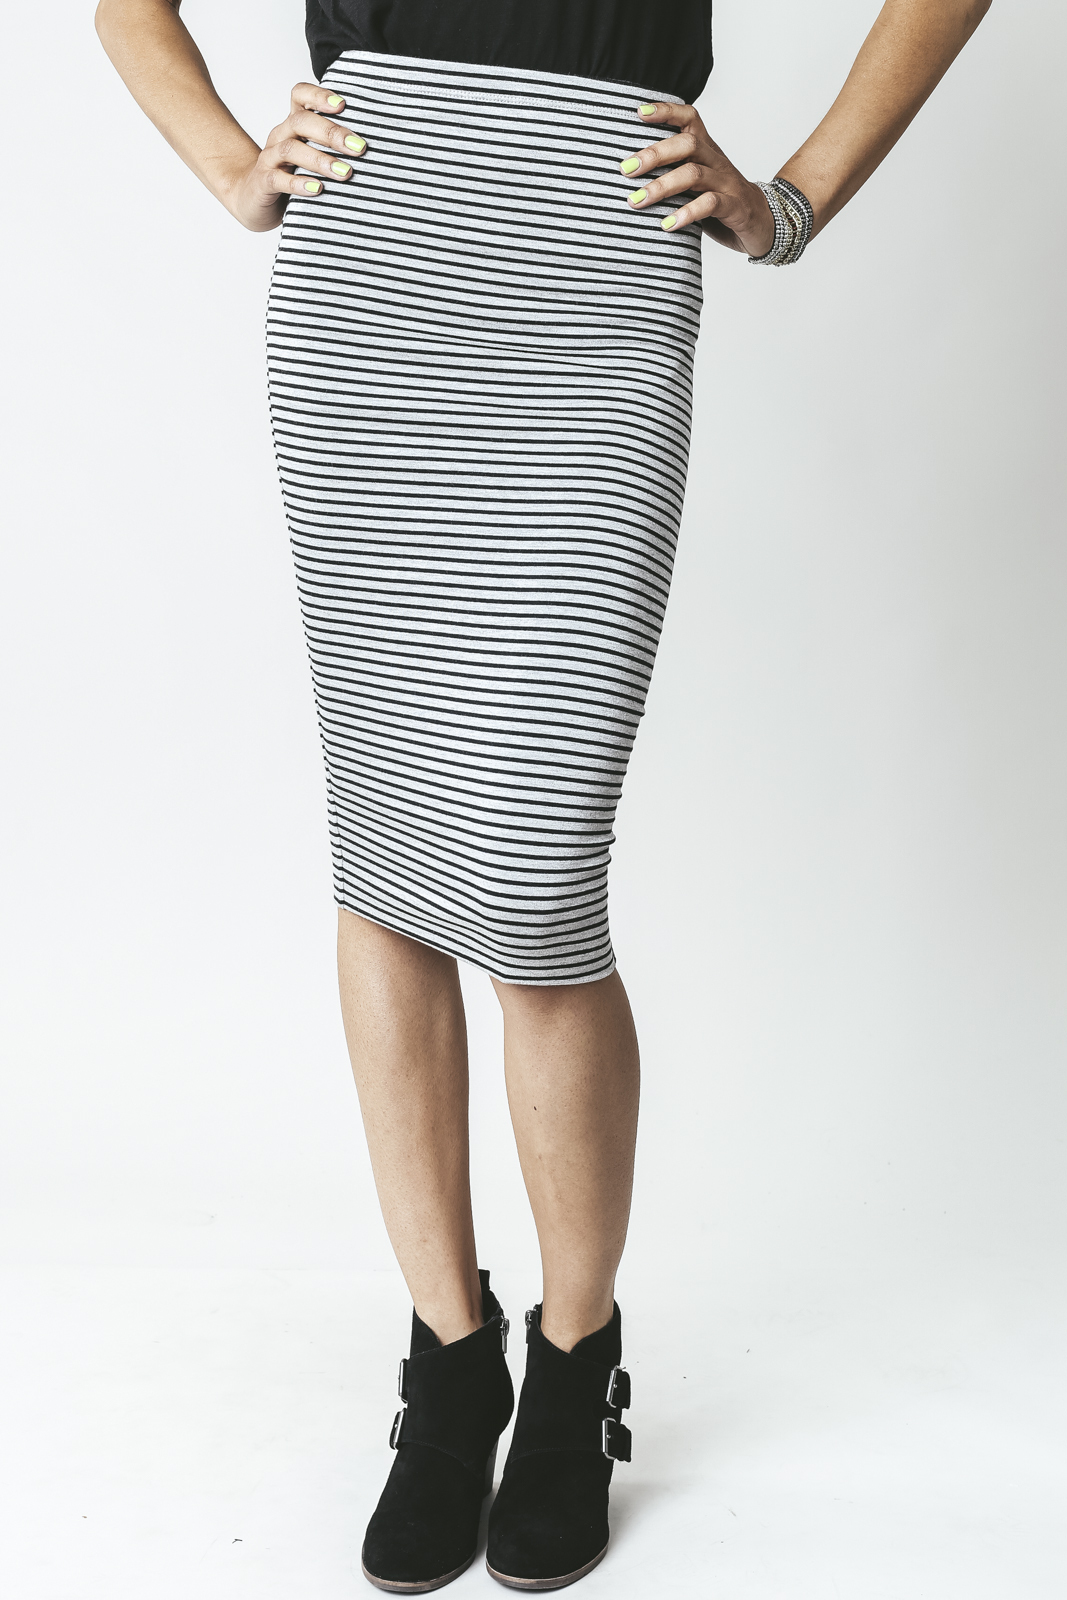 Knit Pencil Skirt | Dressed Up Girl